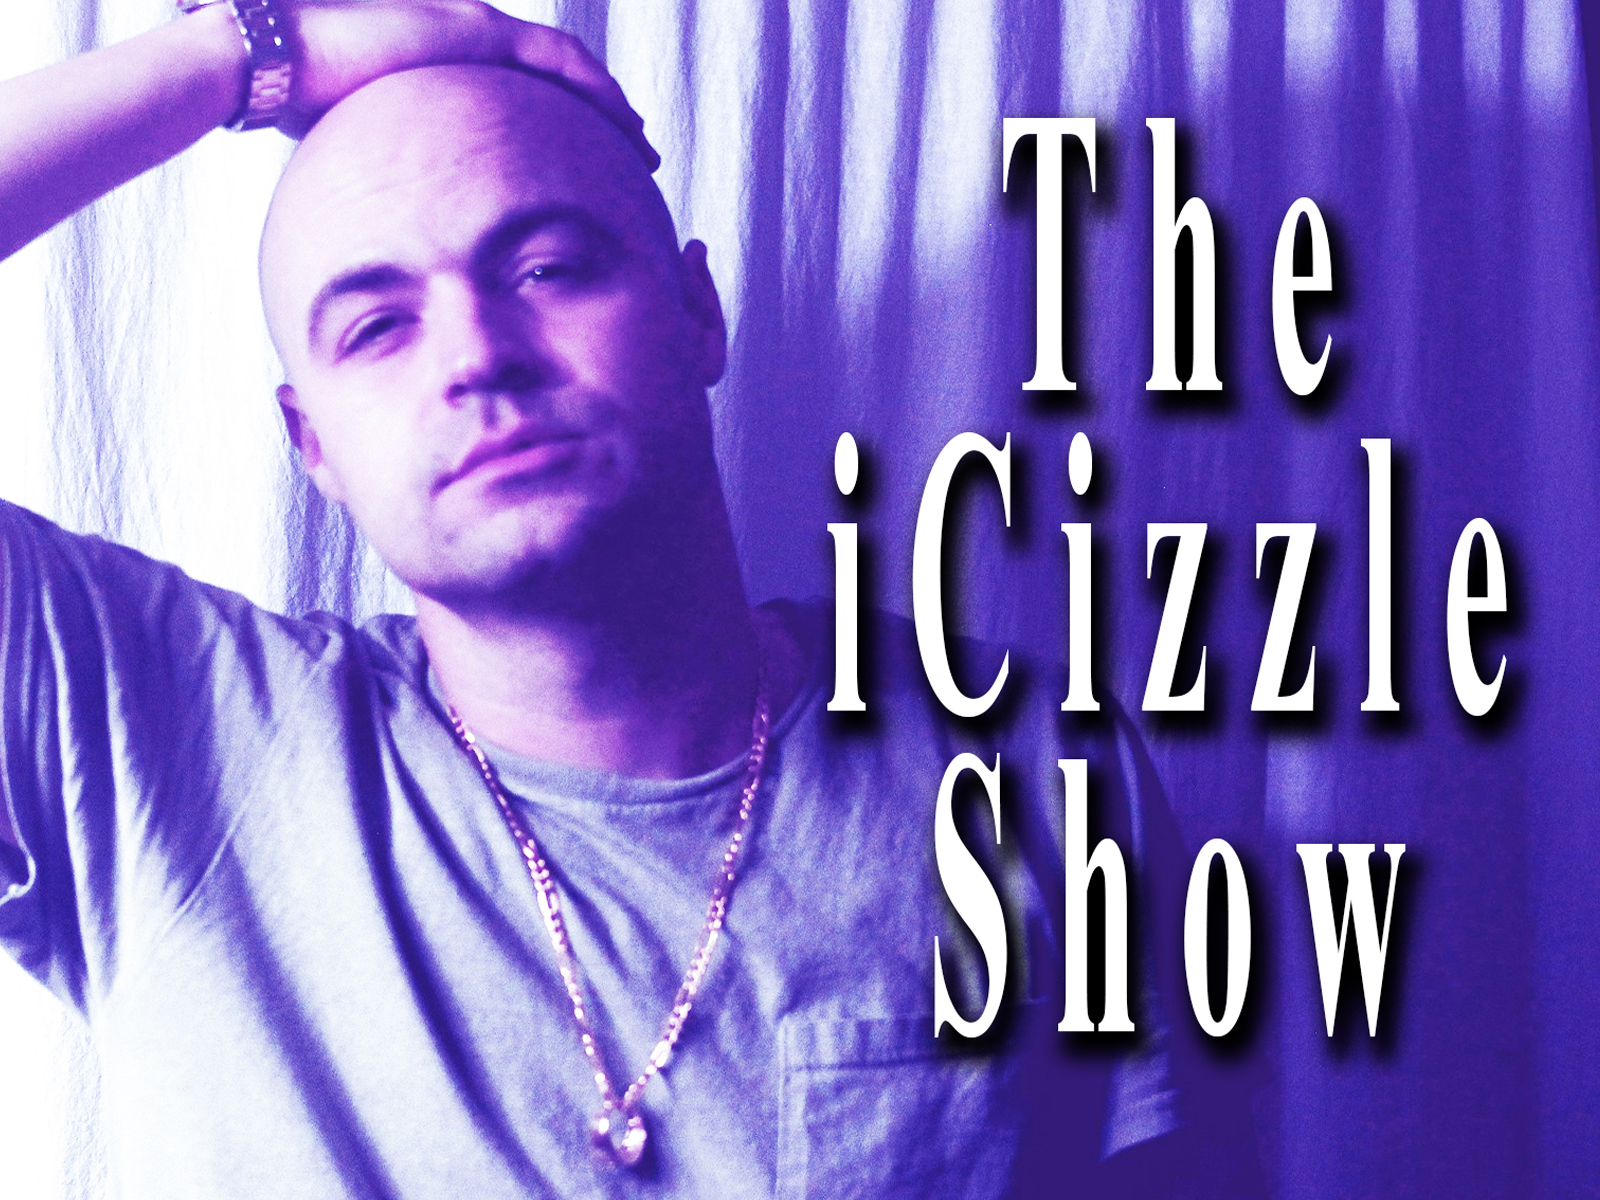 The iCizzle Show Poster-4x3-Amazon1